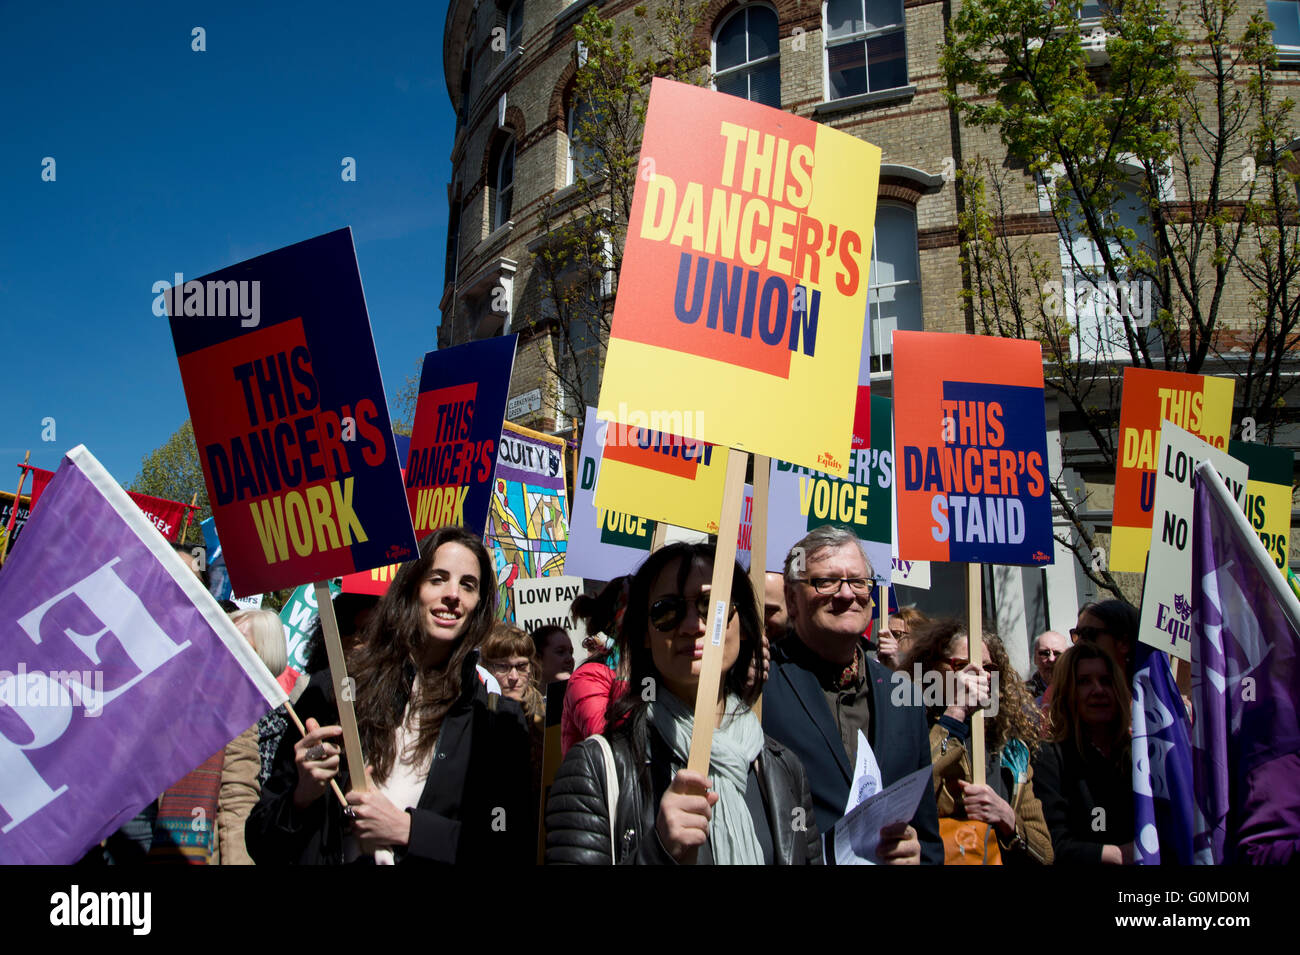 Mayday 2016. Clerkenwell. International workers Day. Dancers Union members with placards. - Stock Image